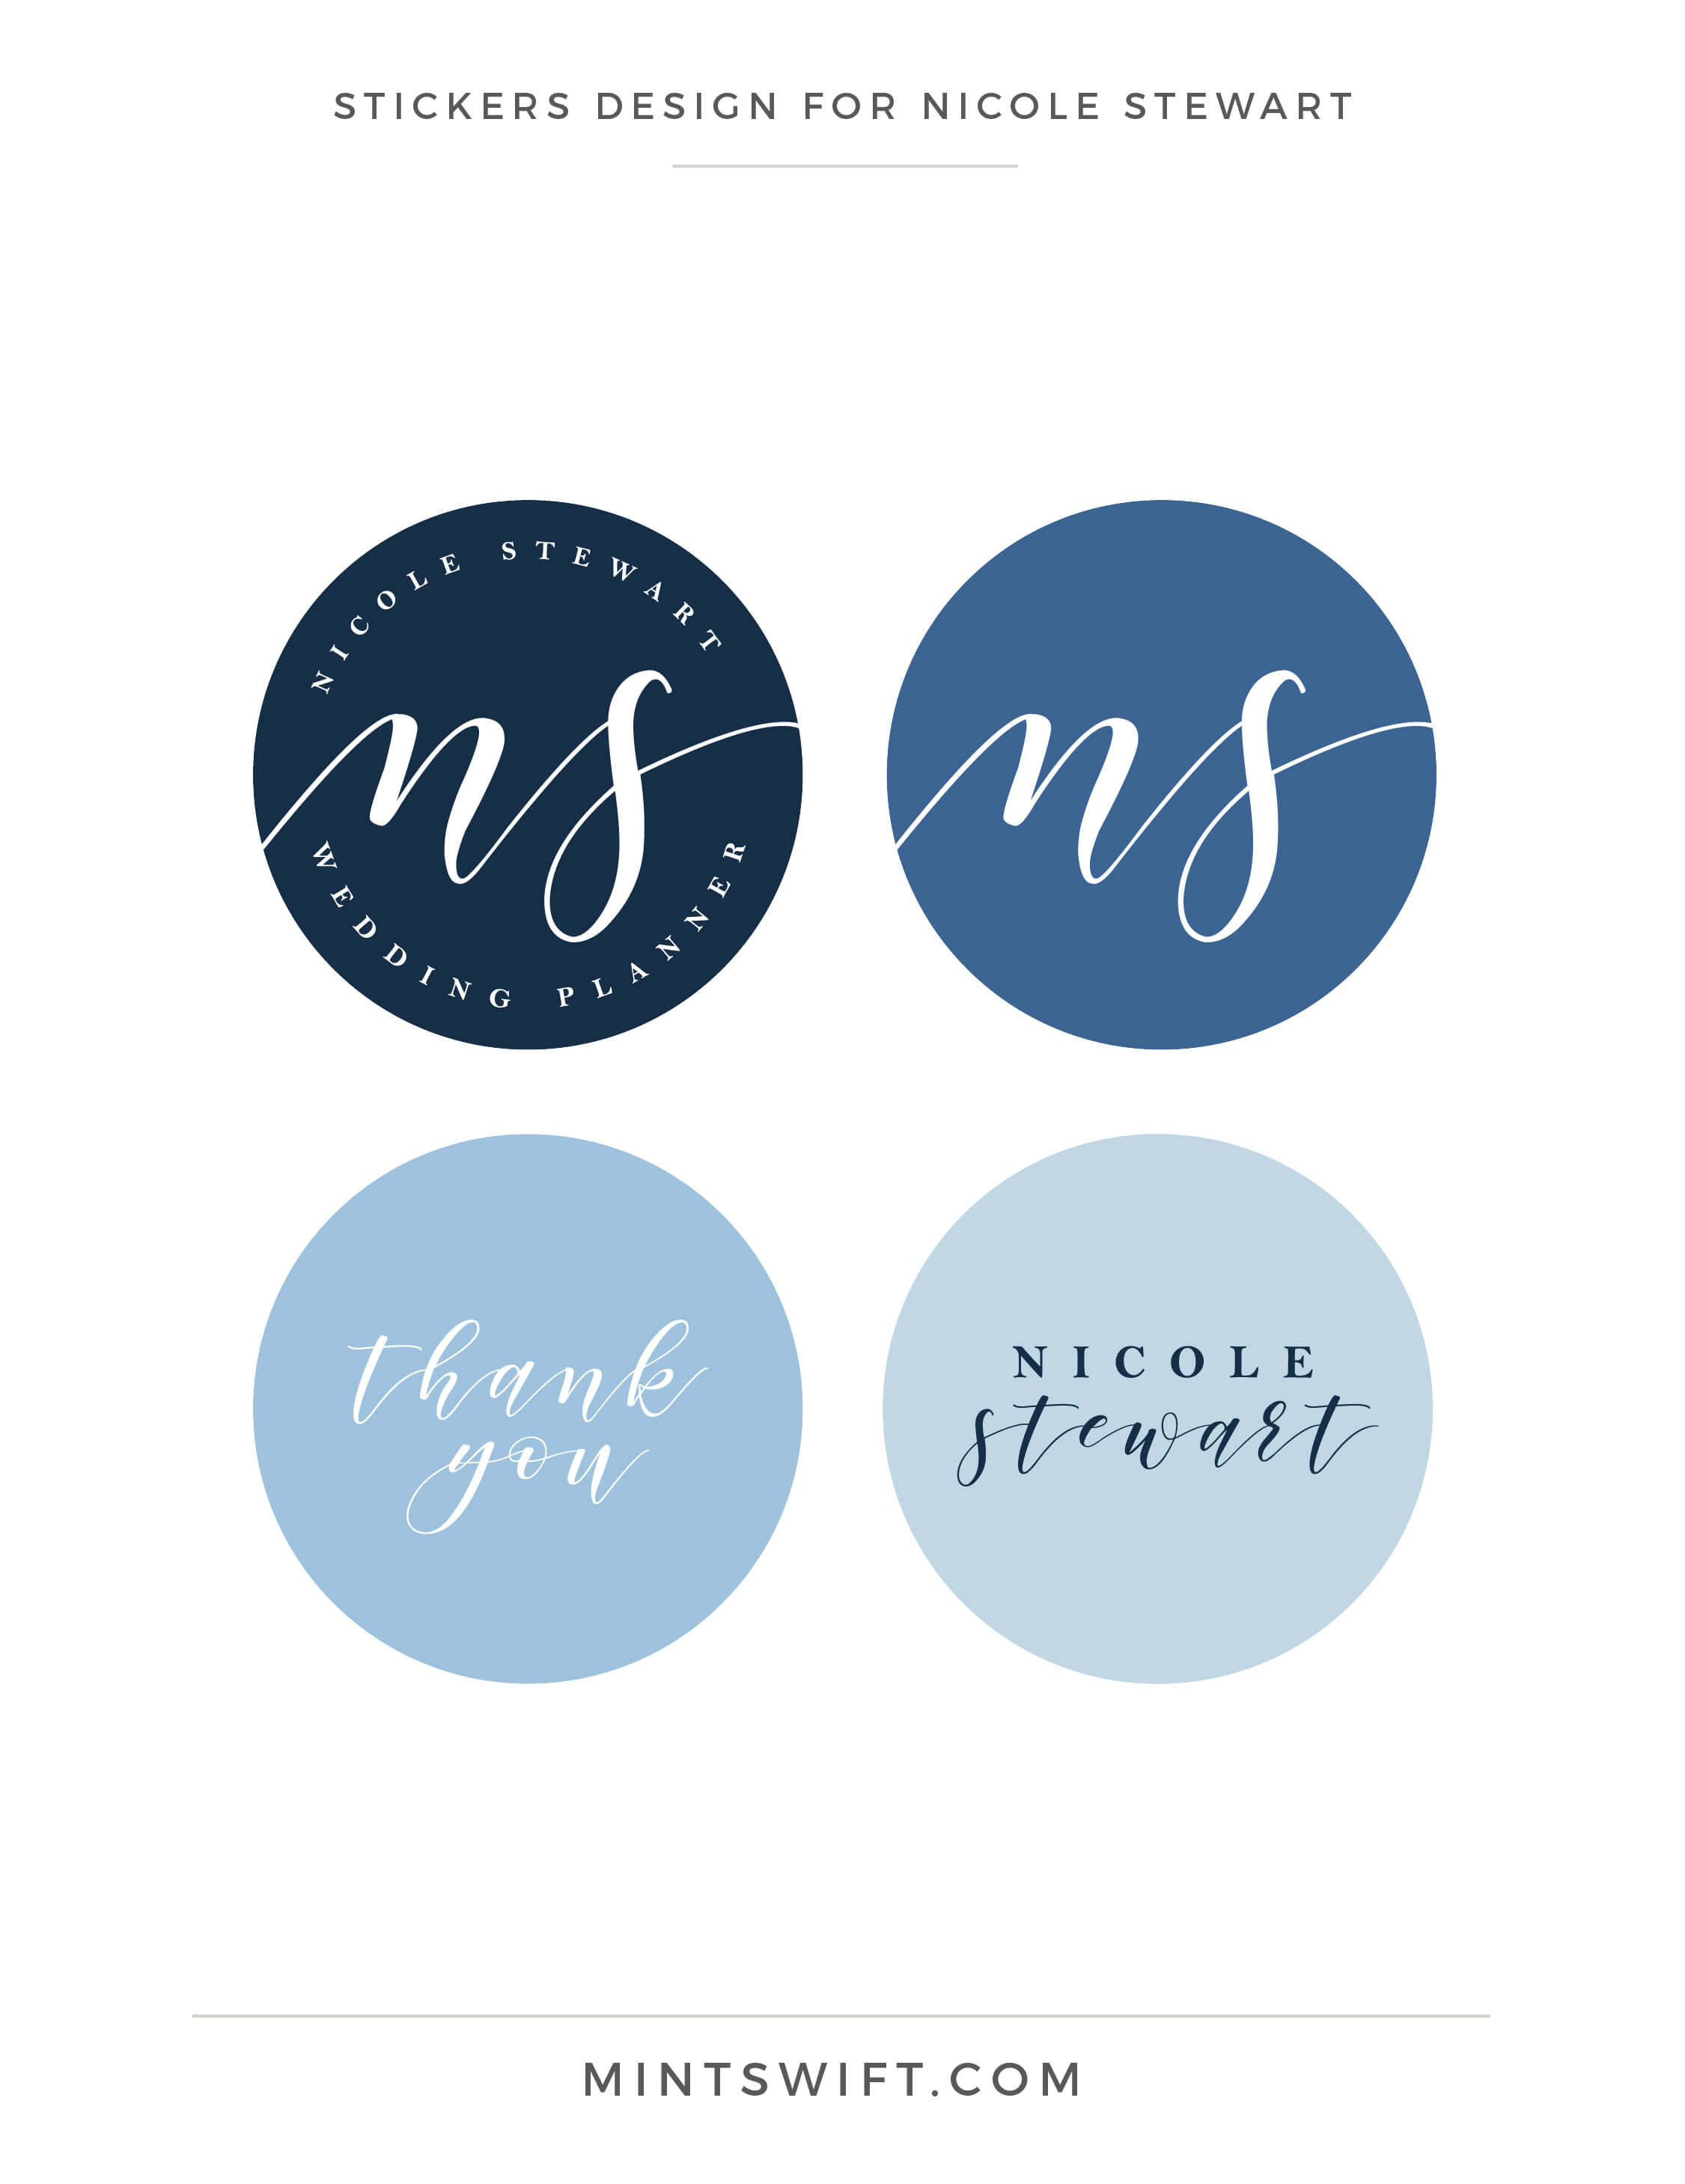 Nicole Stewart - Stickers Design - Brand Design Package - MintSwift